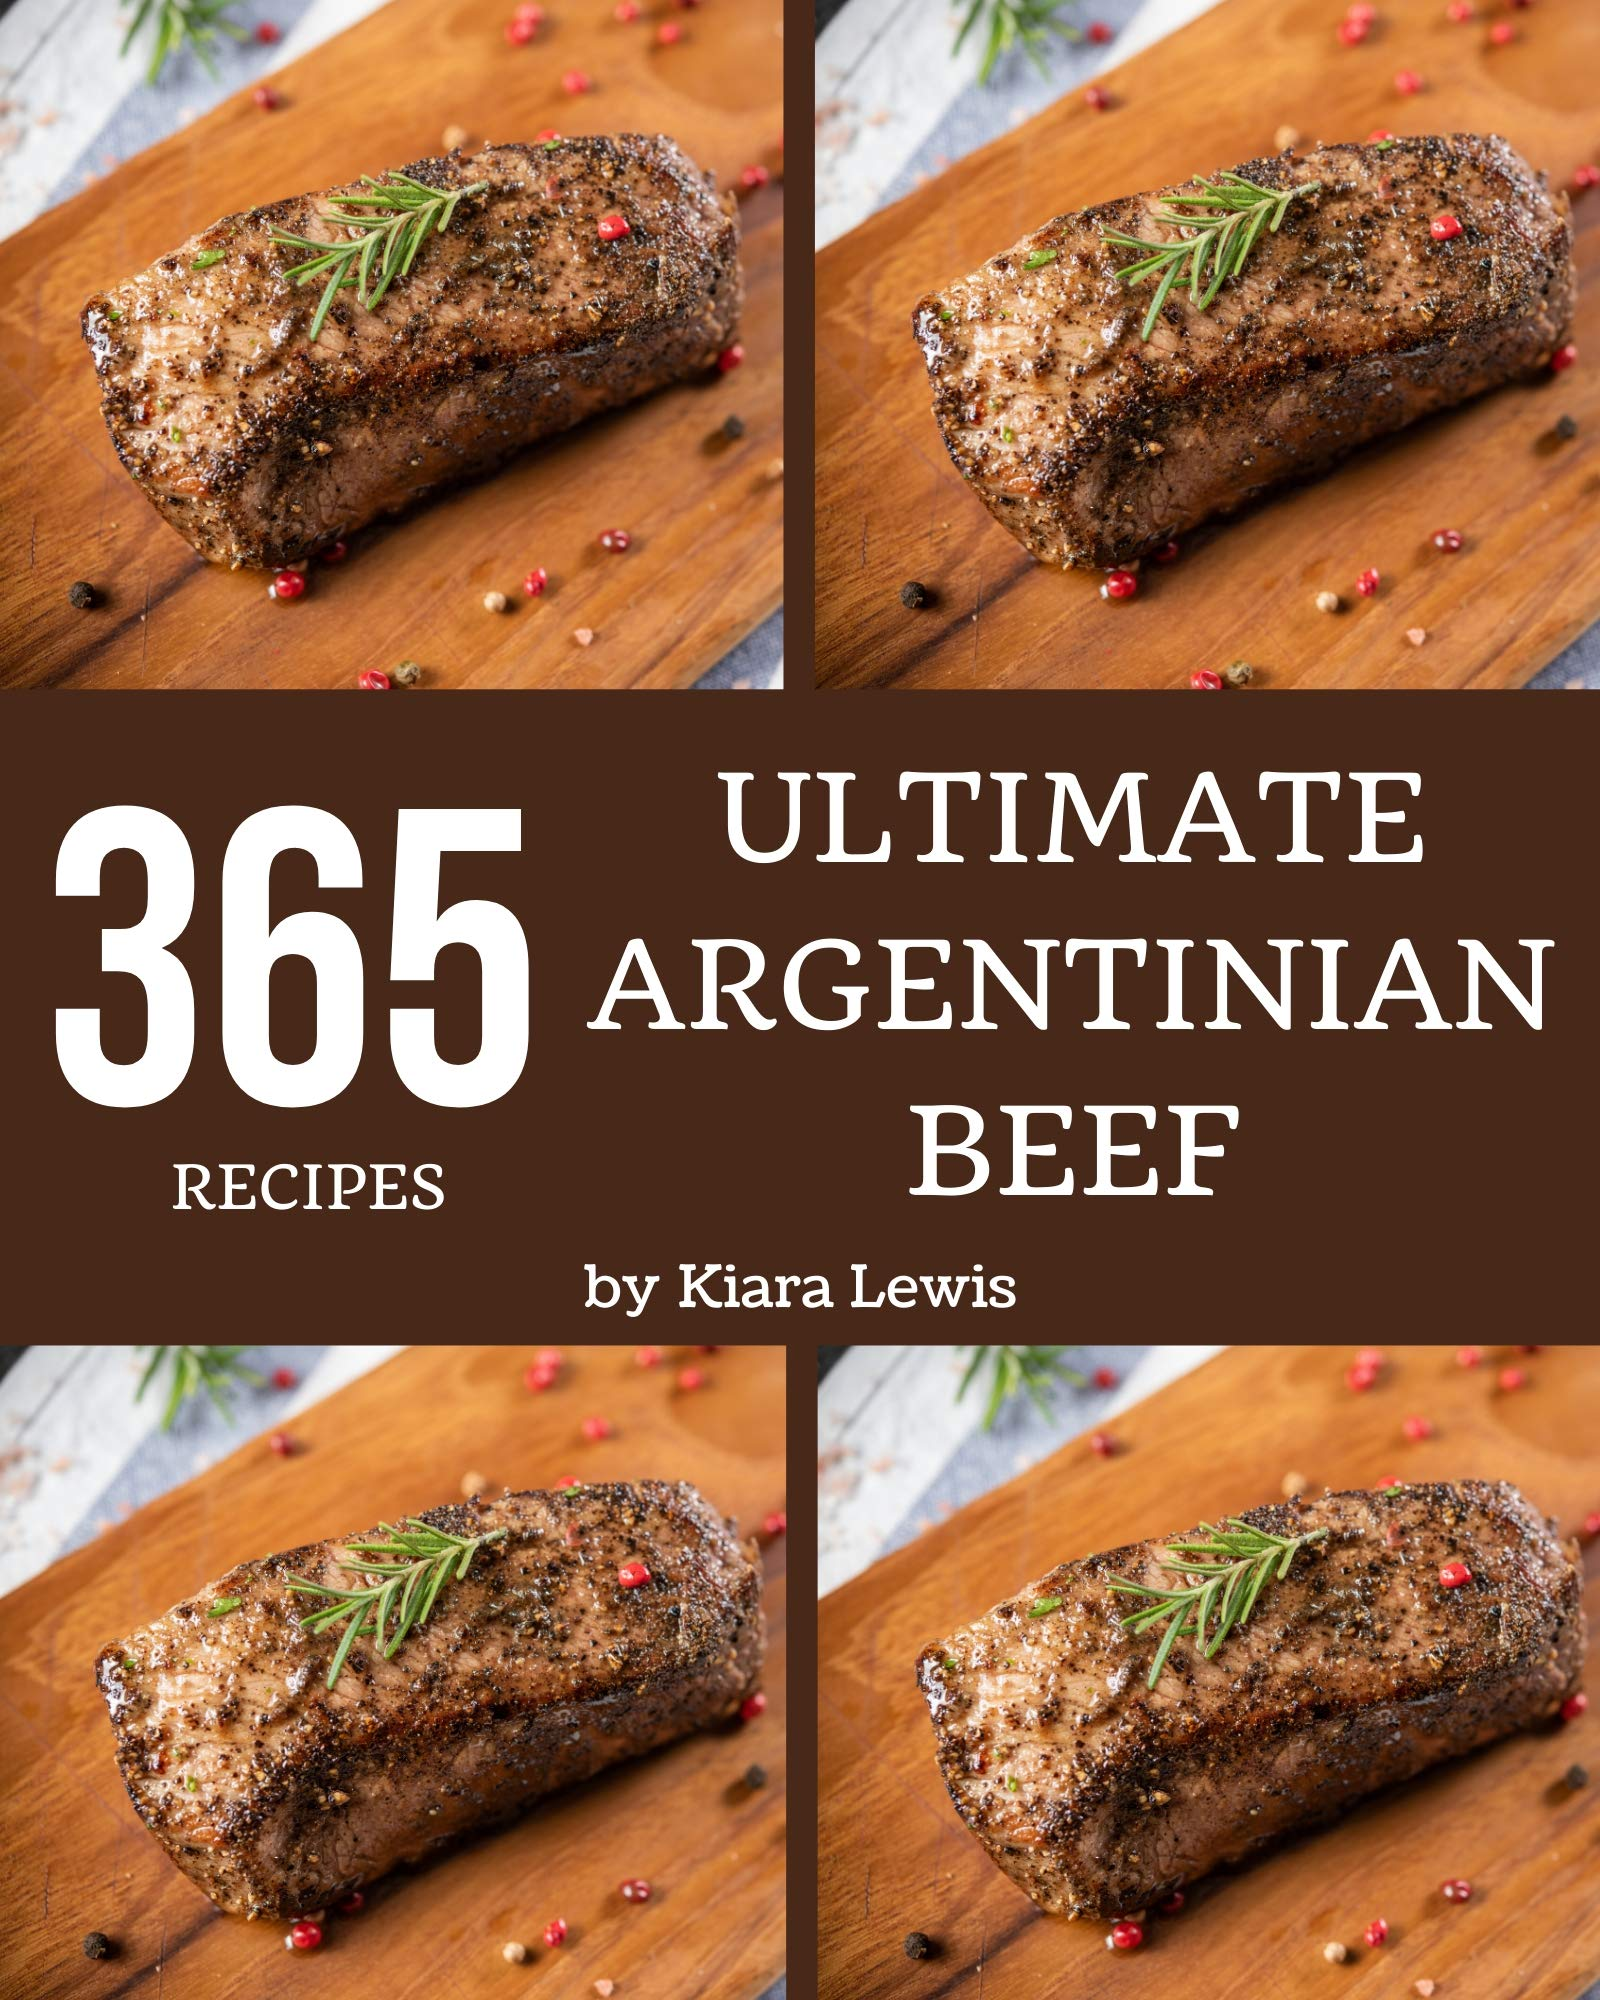 365 Ultimate Argentinian Beef Recipes: Let's Get Started with The Best Argentinian Beef Cookbook!